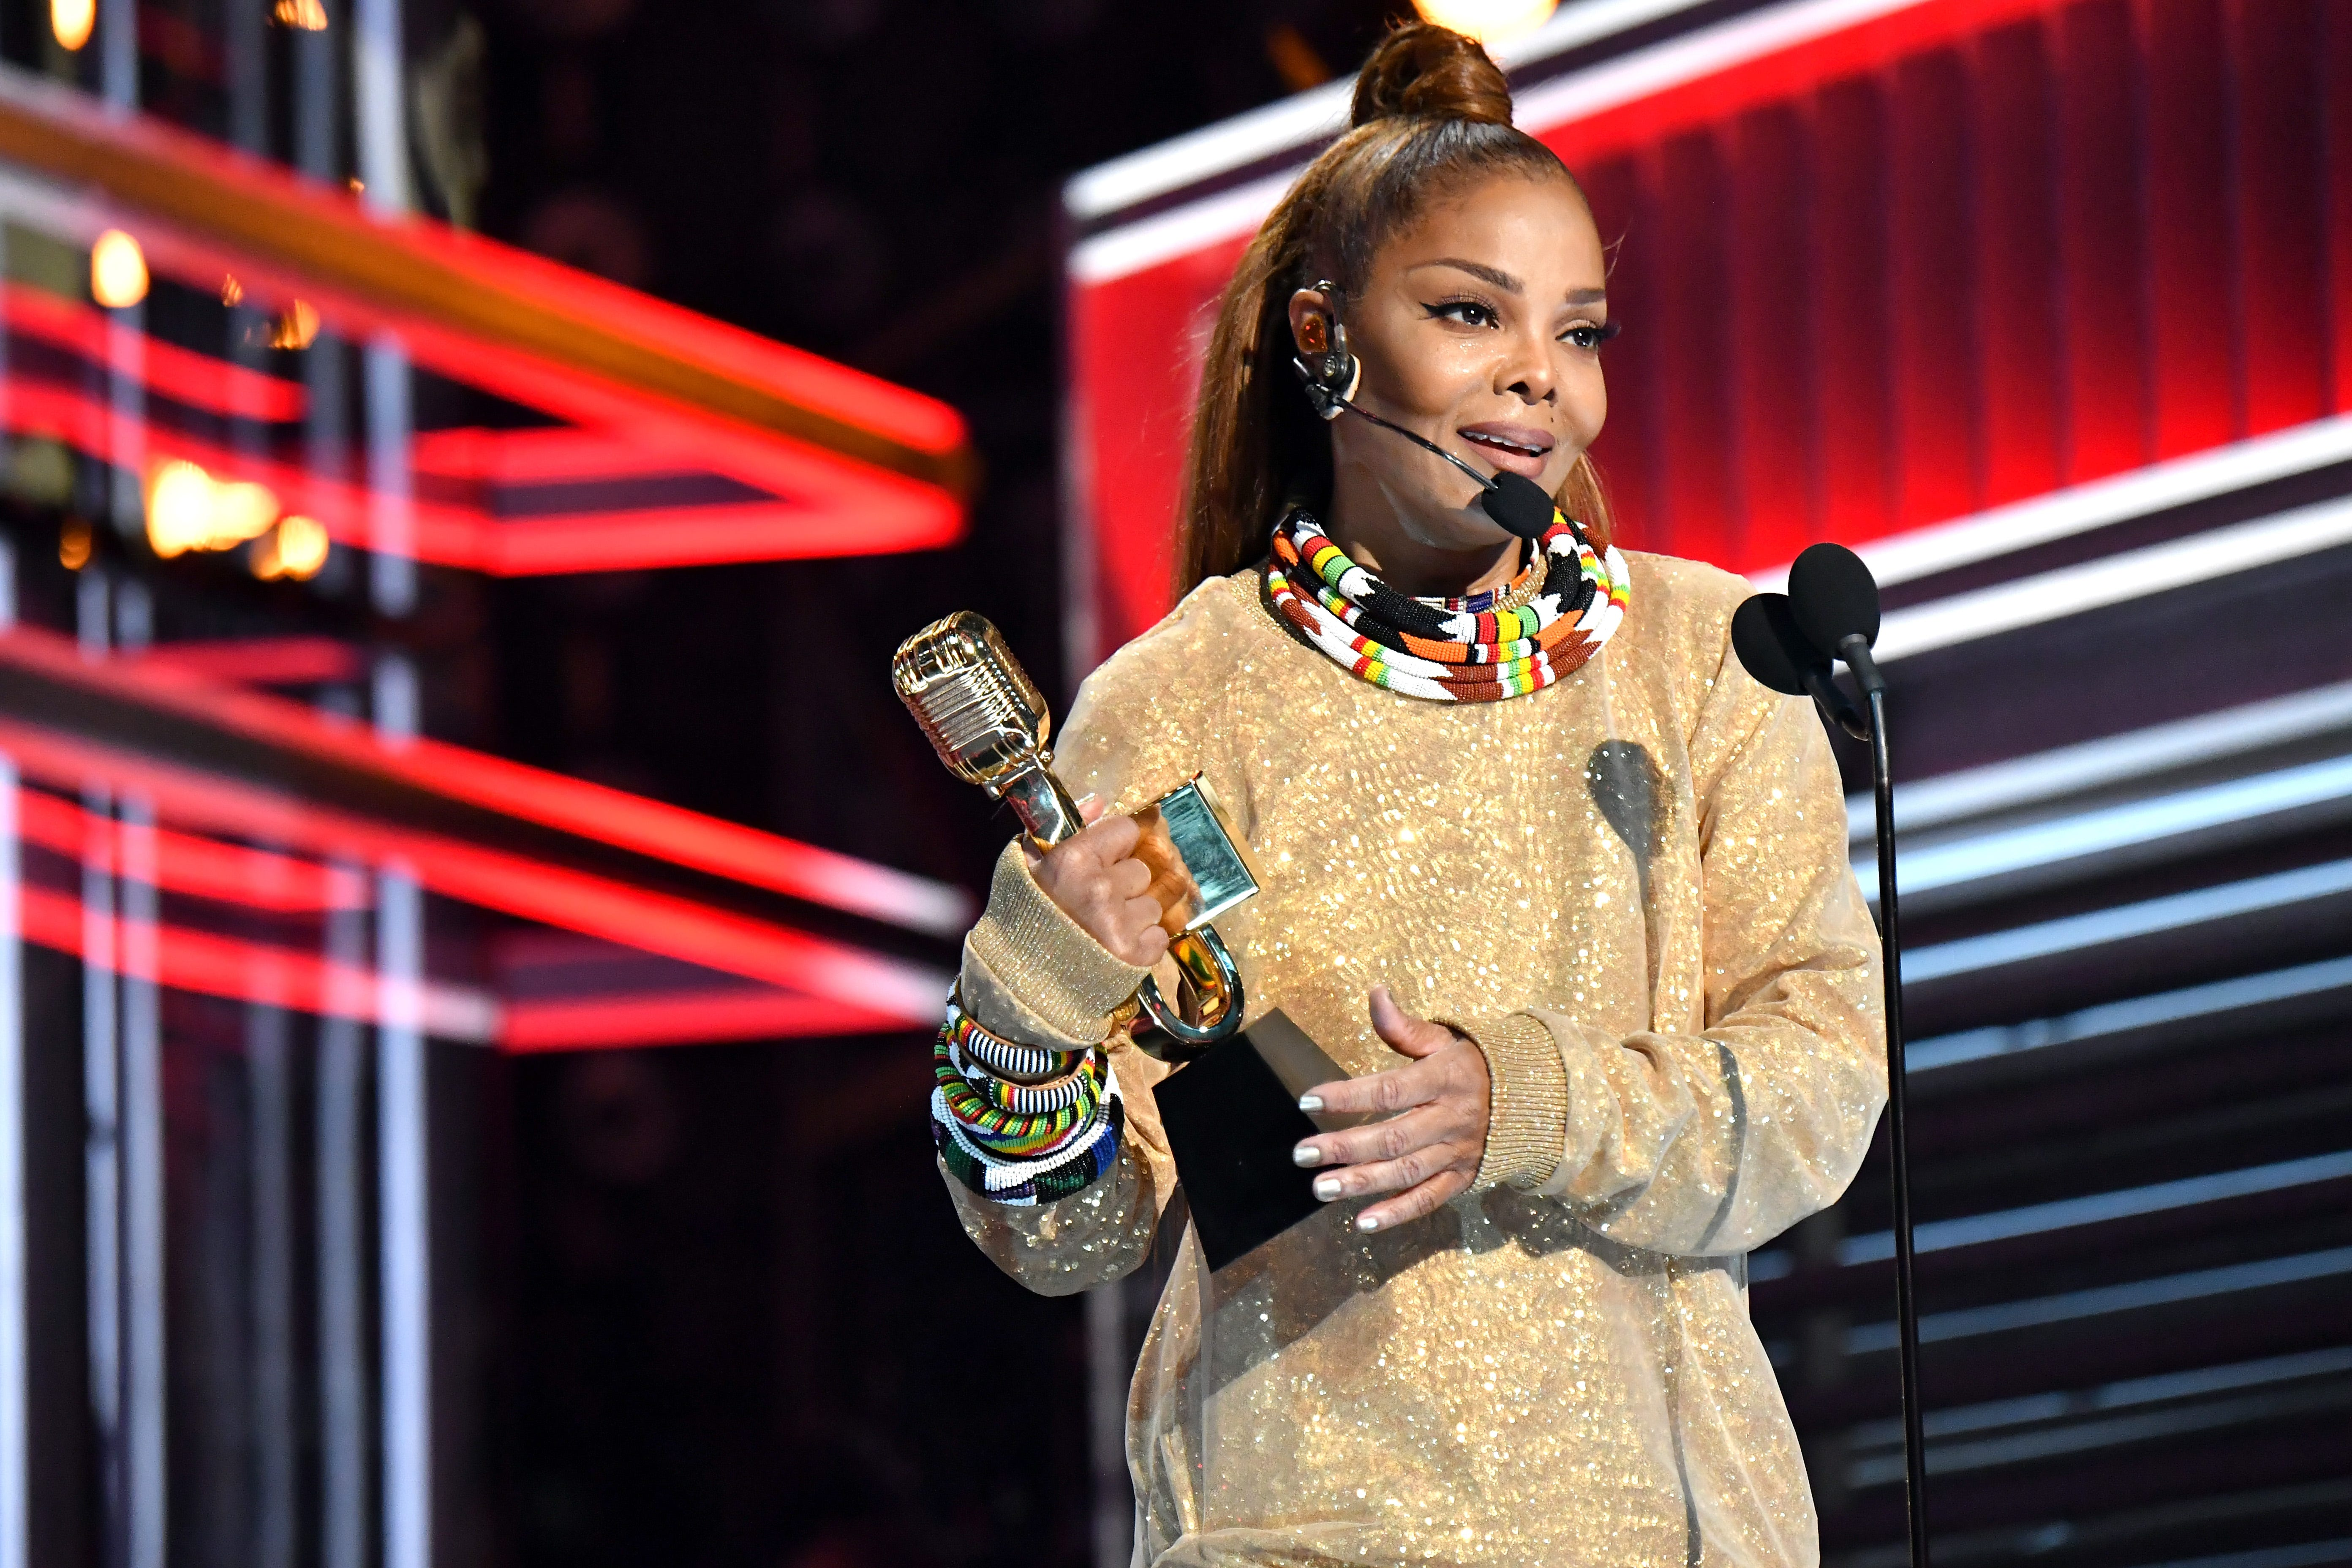 Janet Jackson thanks ailing father, who tweets 'the sun sets when the time comes'